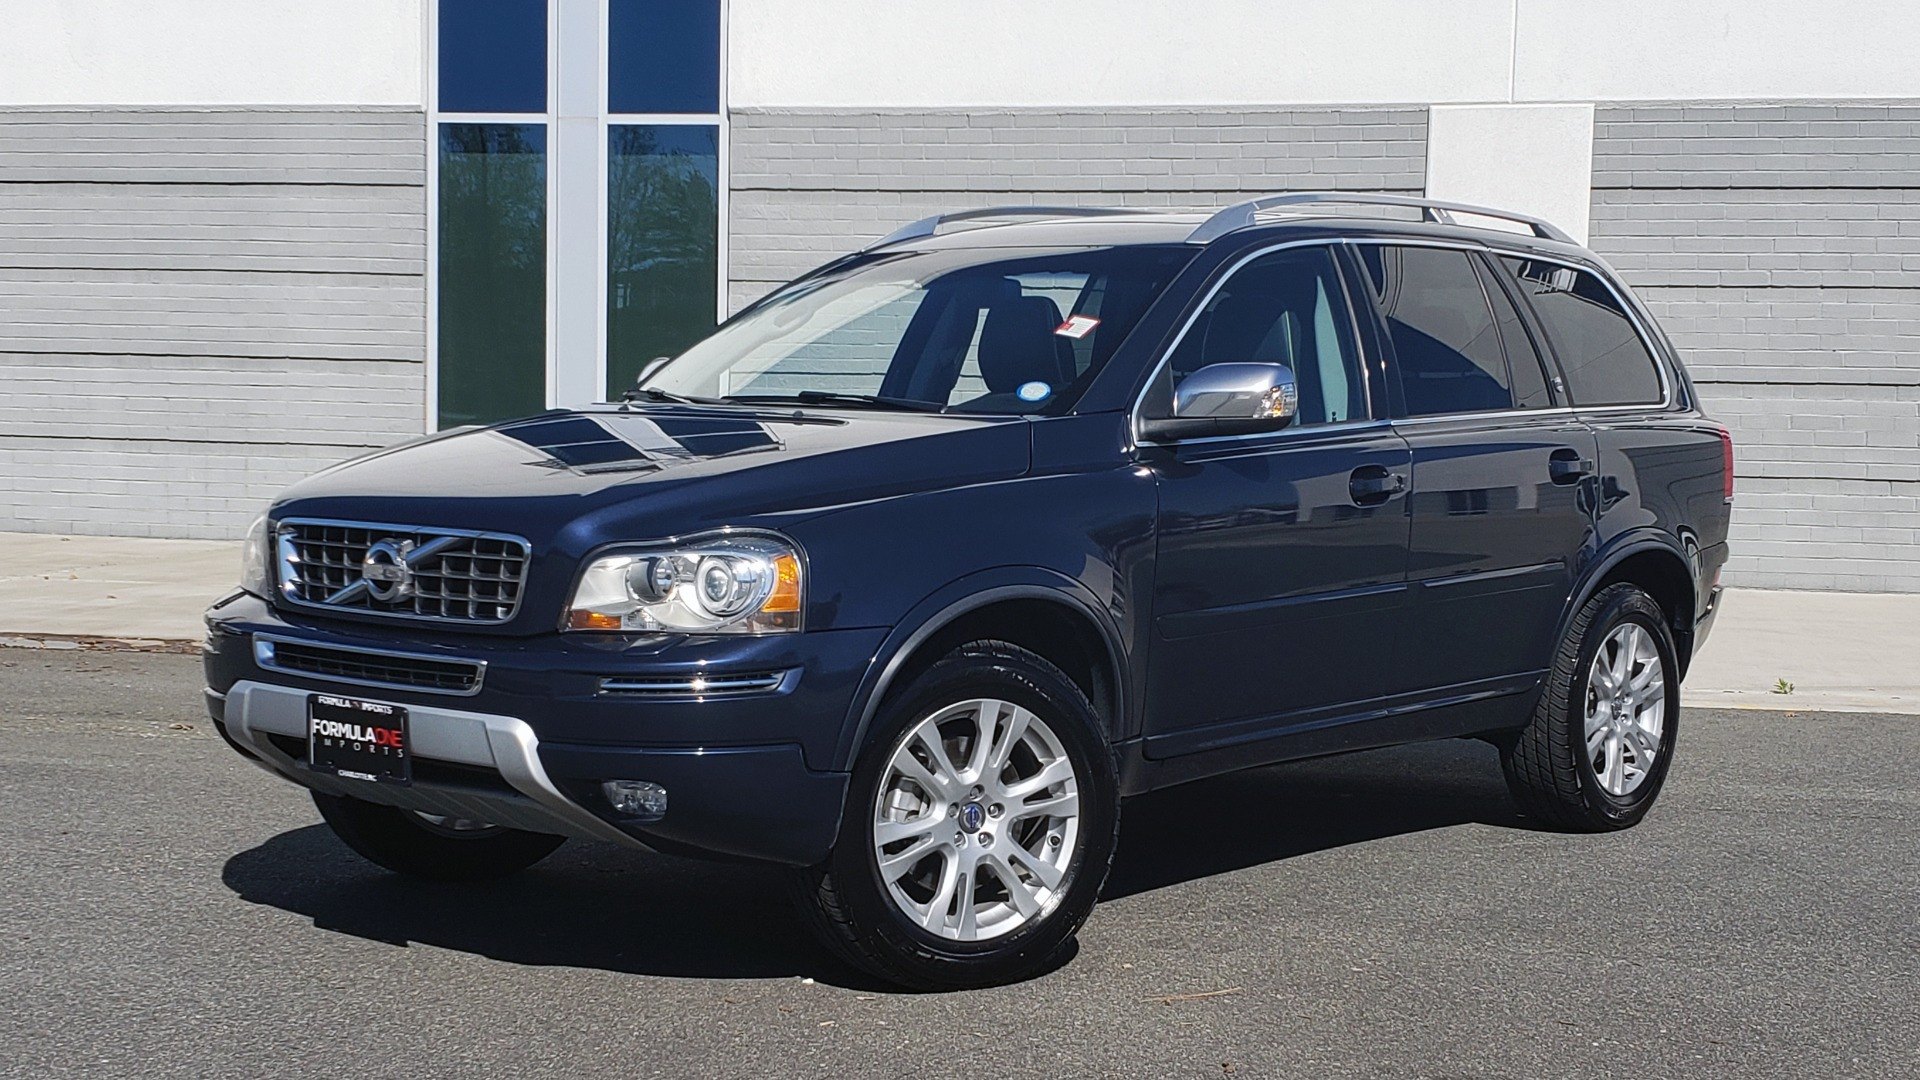 Used 2013 Volvo XC90 PREMIUM PLUS / AWD / HEATED SEATS / SUNROOF / 3-ROW / REARVIEW for sale $16,495 at Formula Imports in Charlotte NC 28227 1